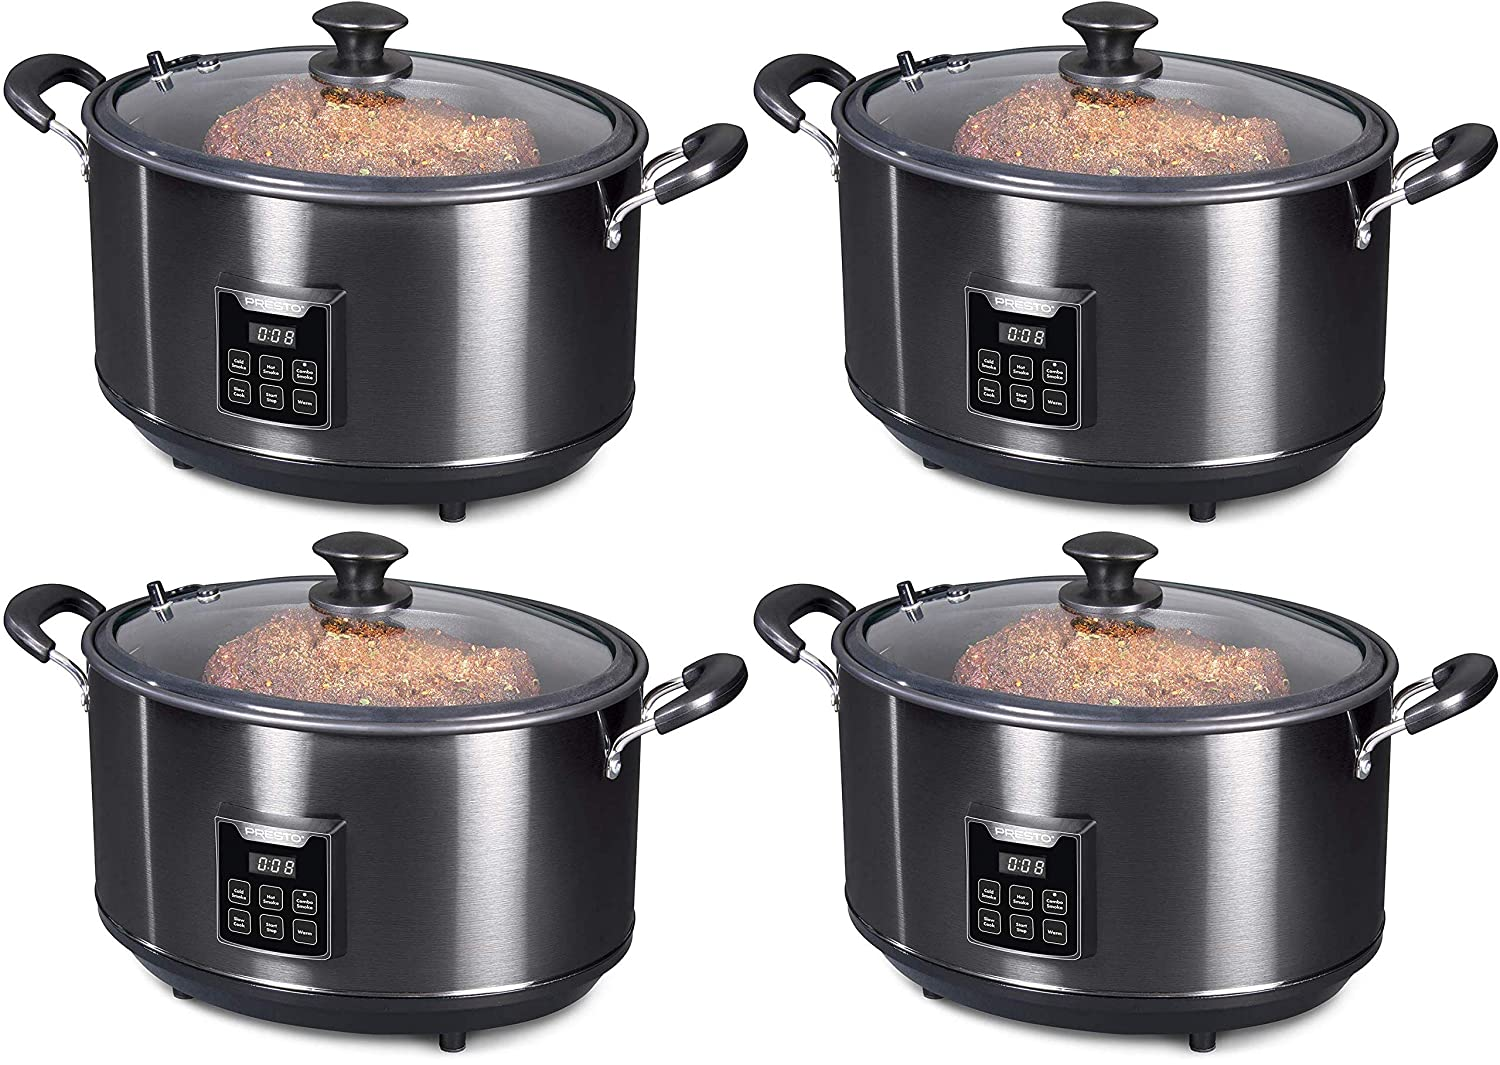 Presto 06013 Electric Indoor Smoker, 6qt, Black Stainless Steel 4-PACK